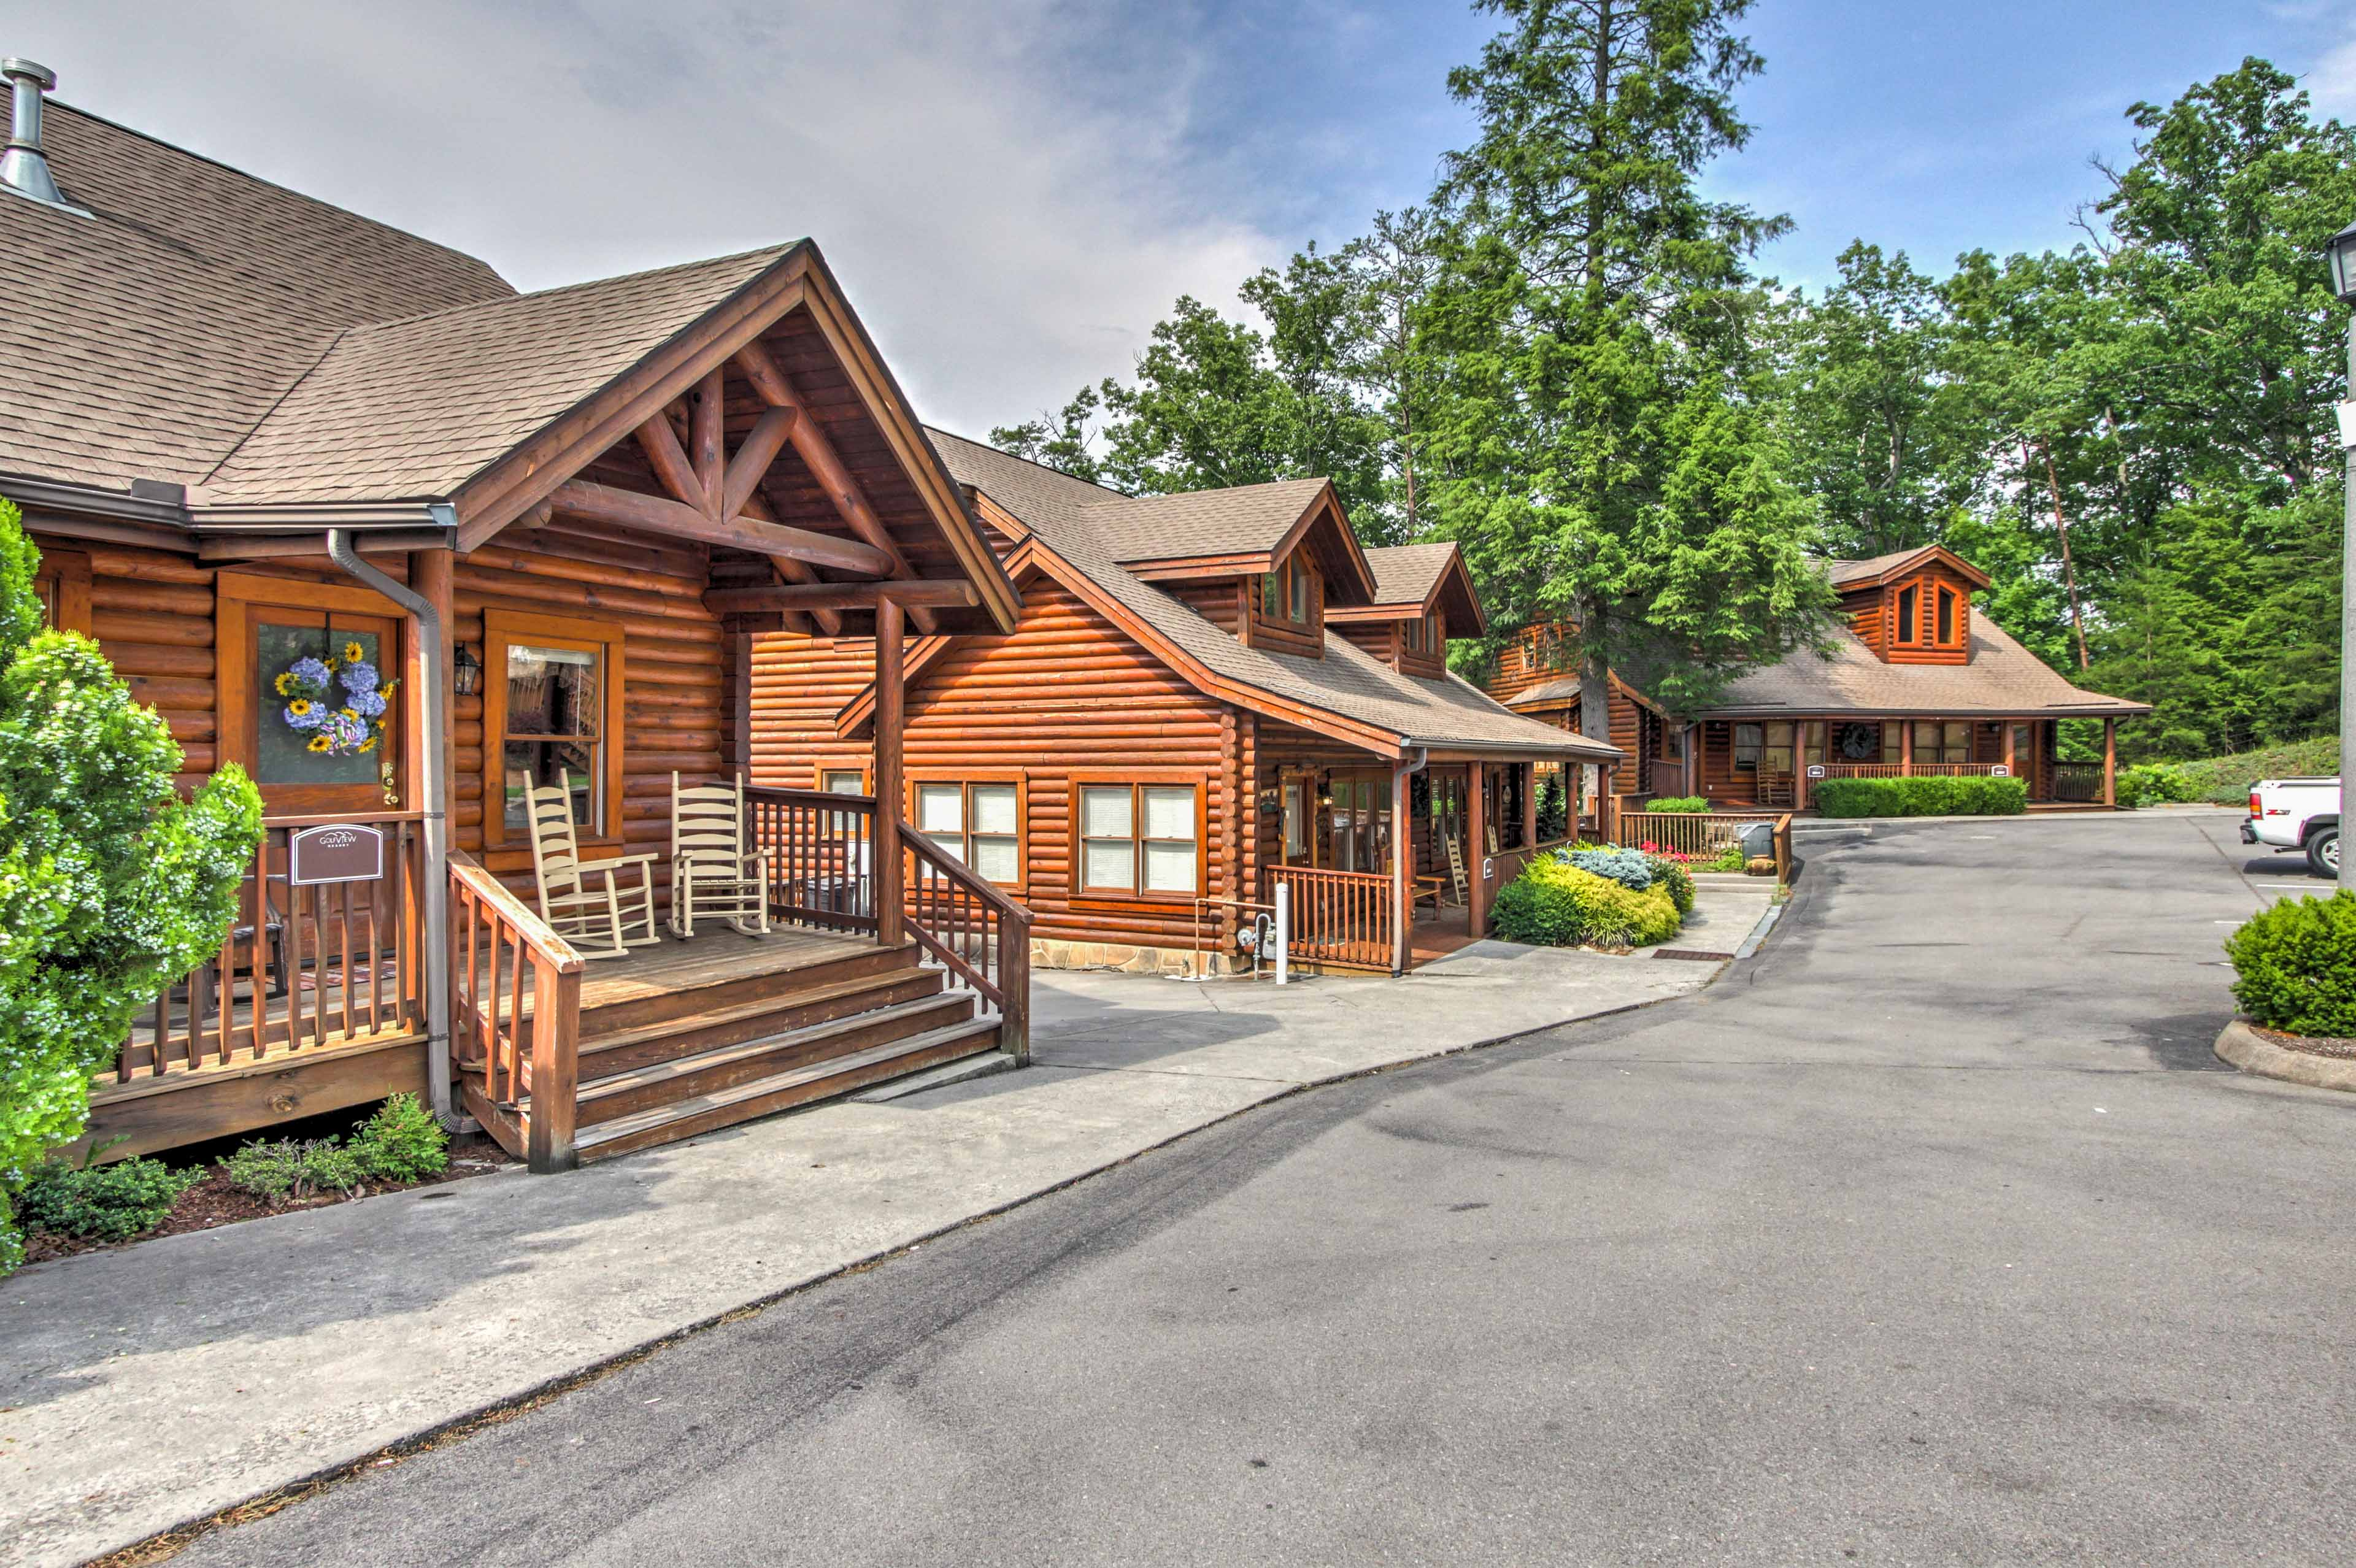 Townhome Exterior | Community Parking Lot